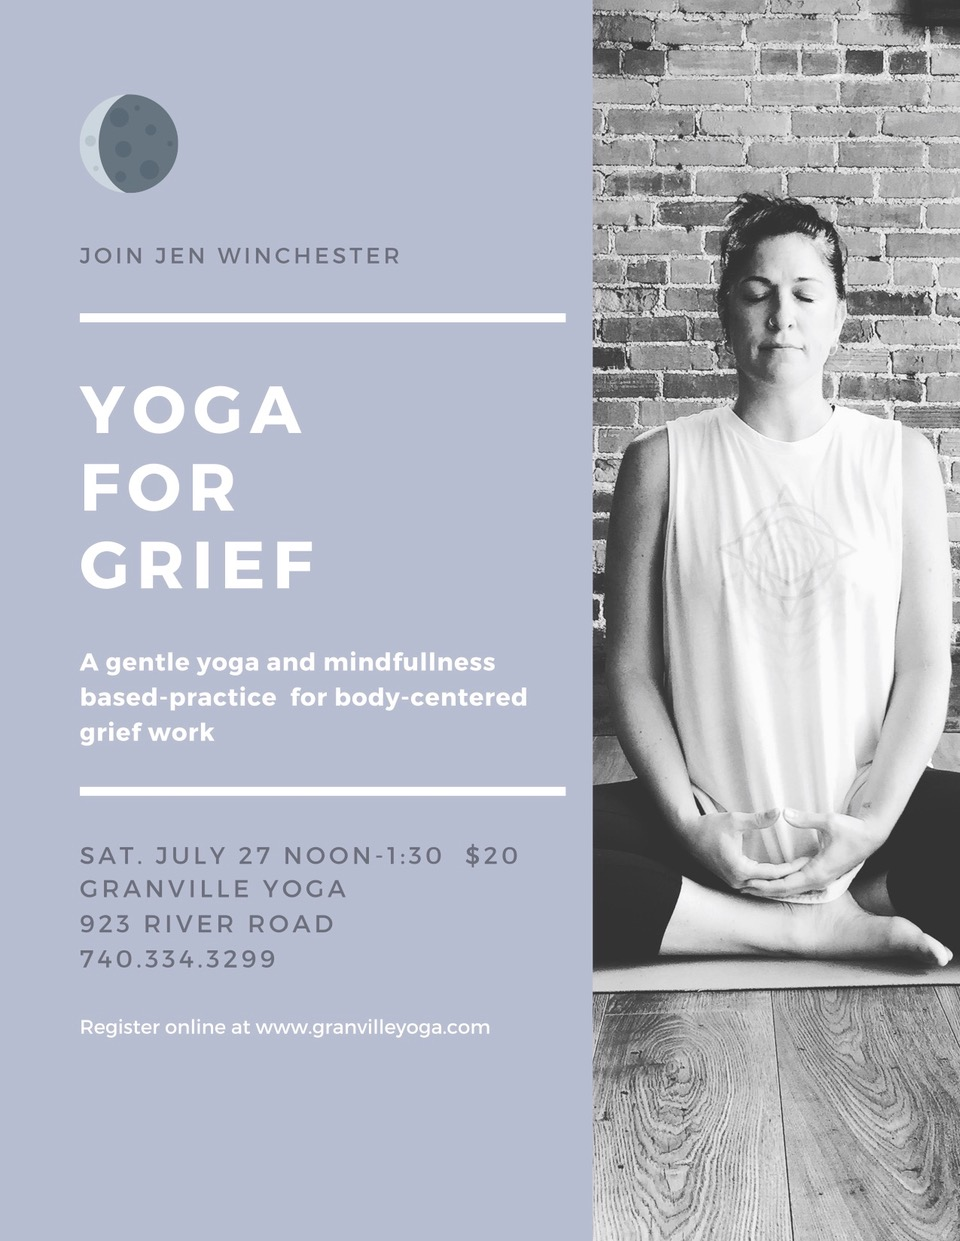 yoga for grief 7 27 19.jpeg